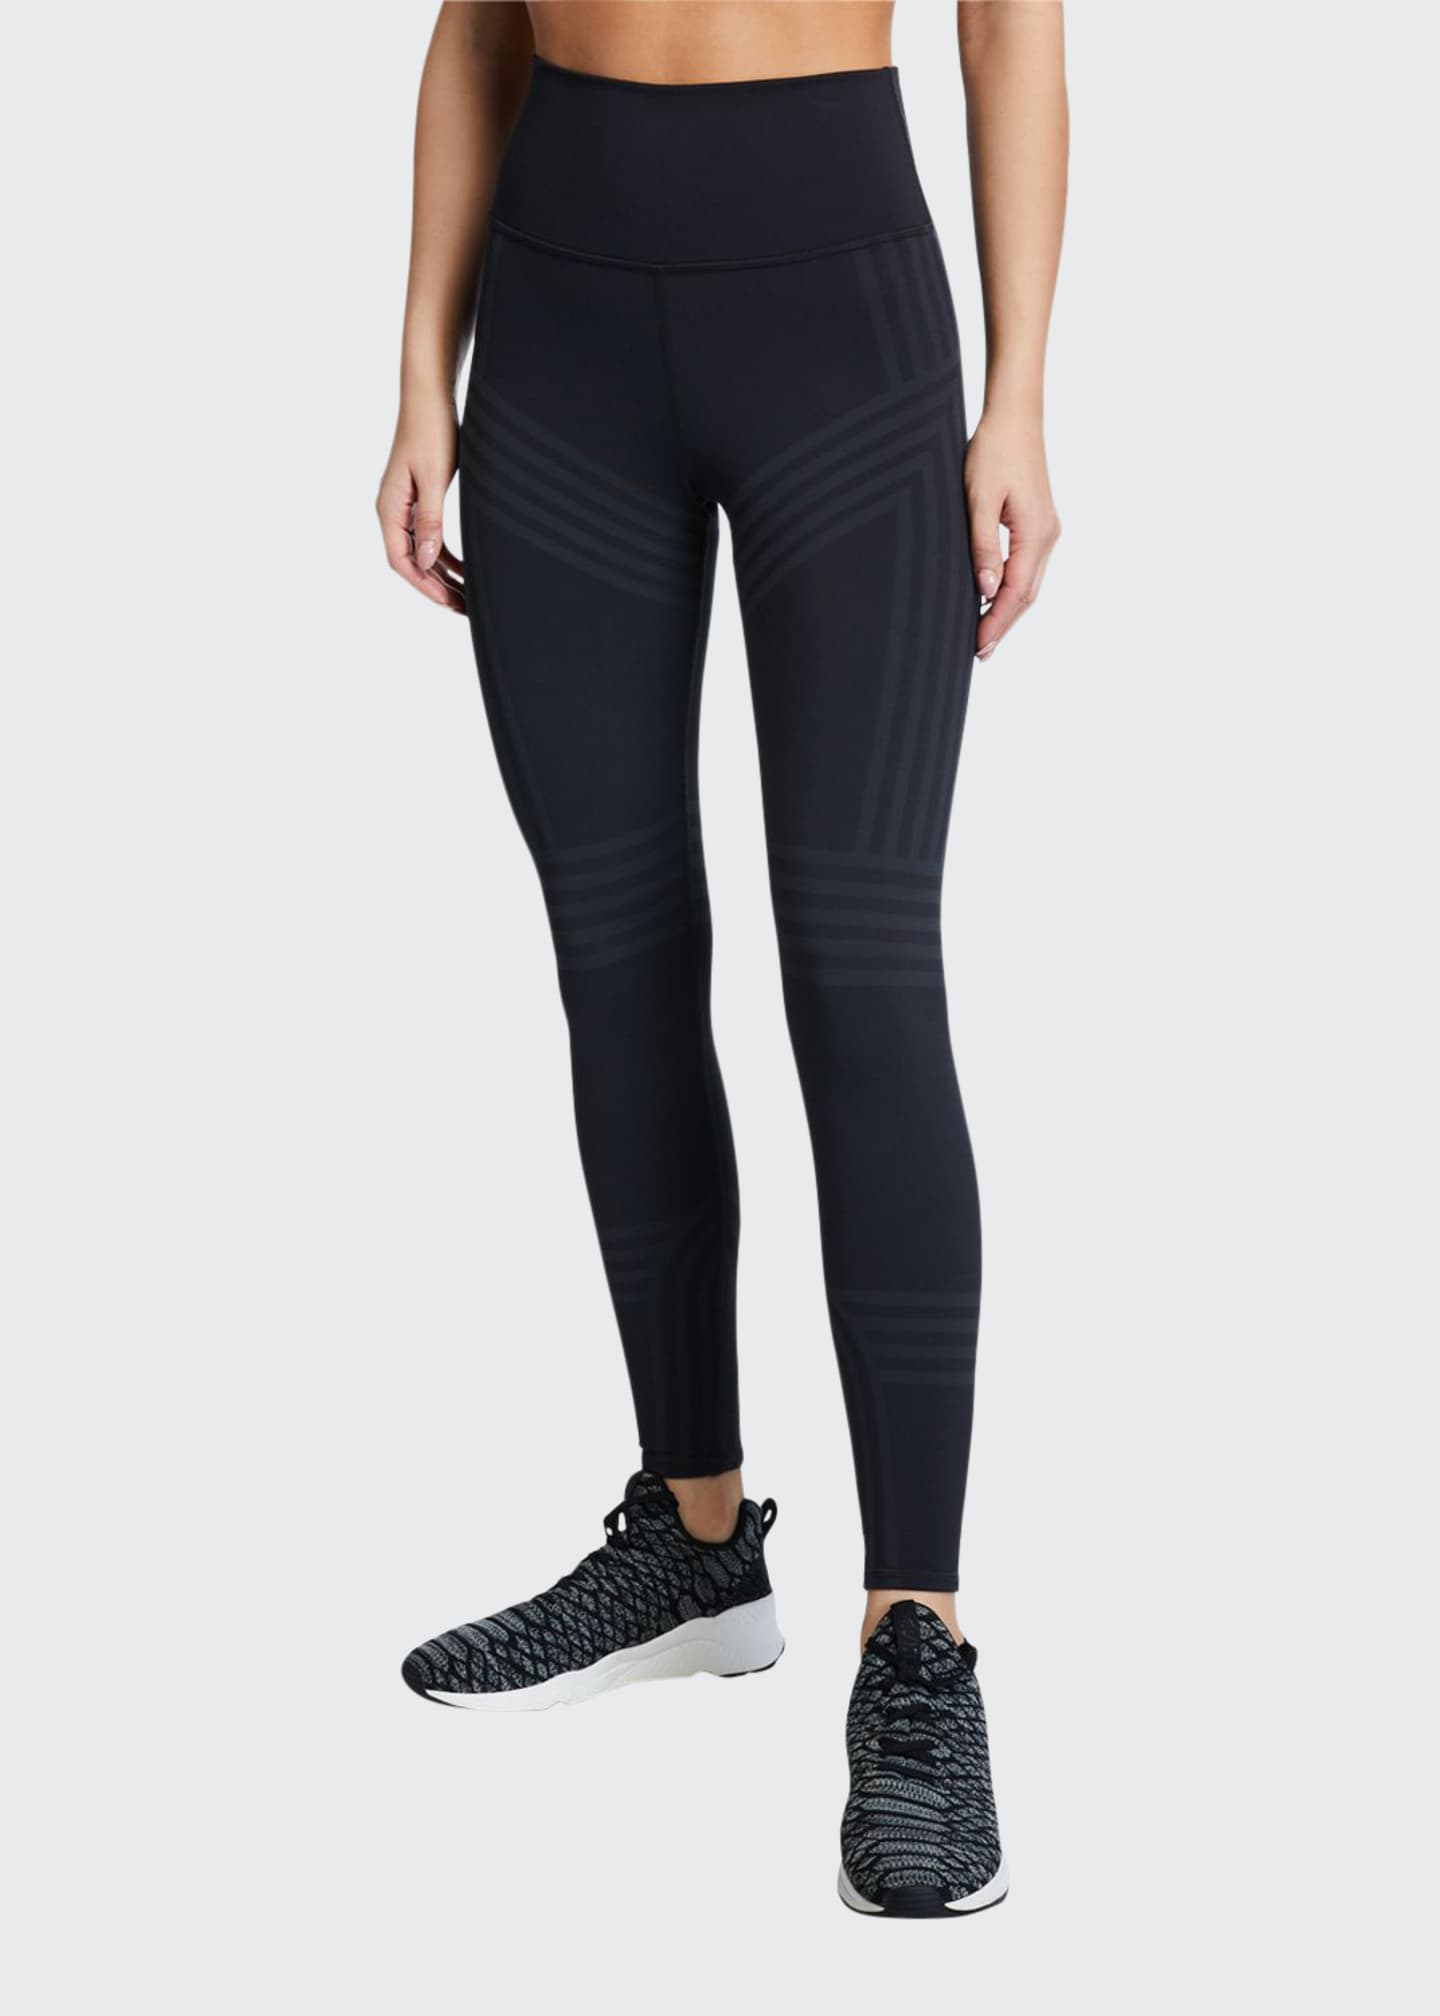 Alo Yoga 7/8 High-Waist Channel Leggings